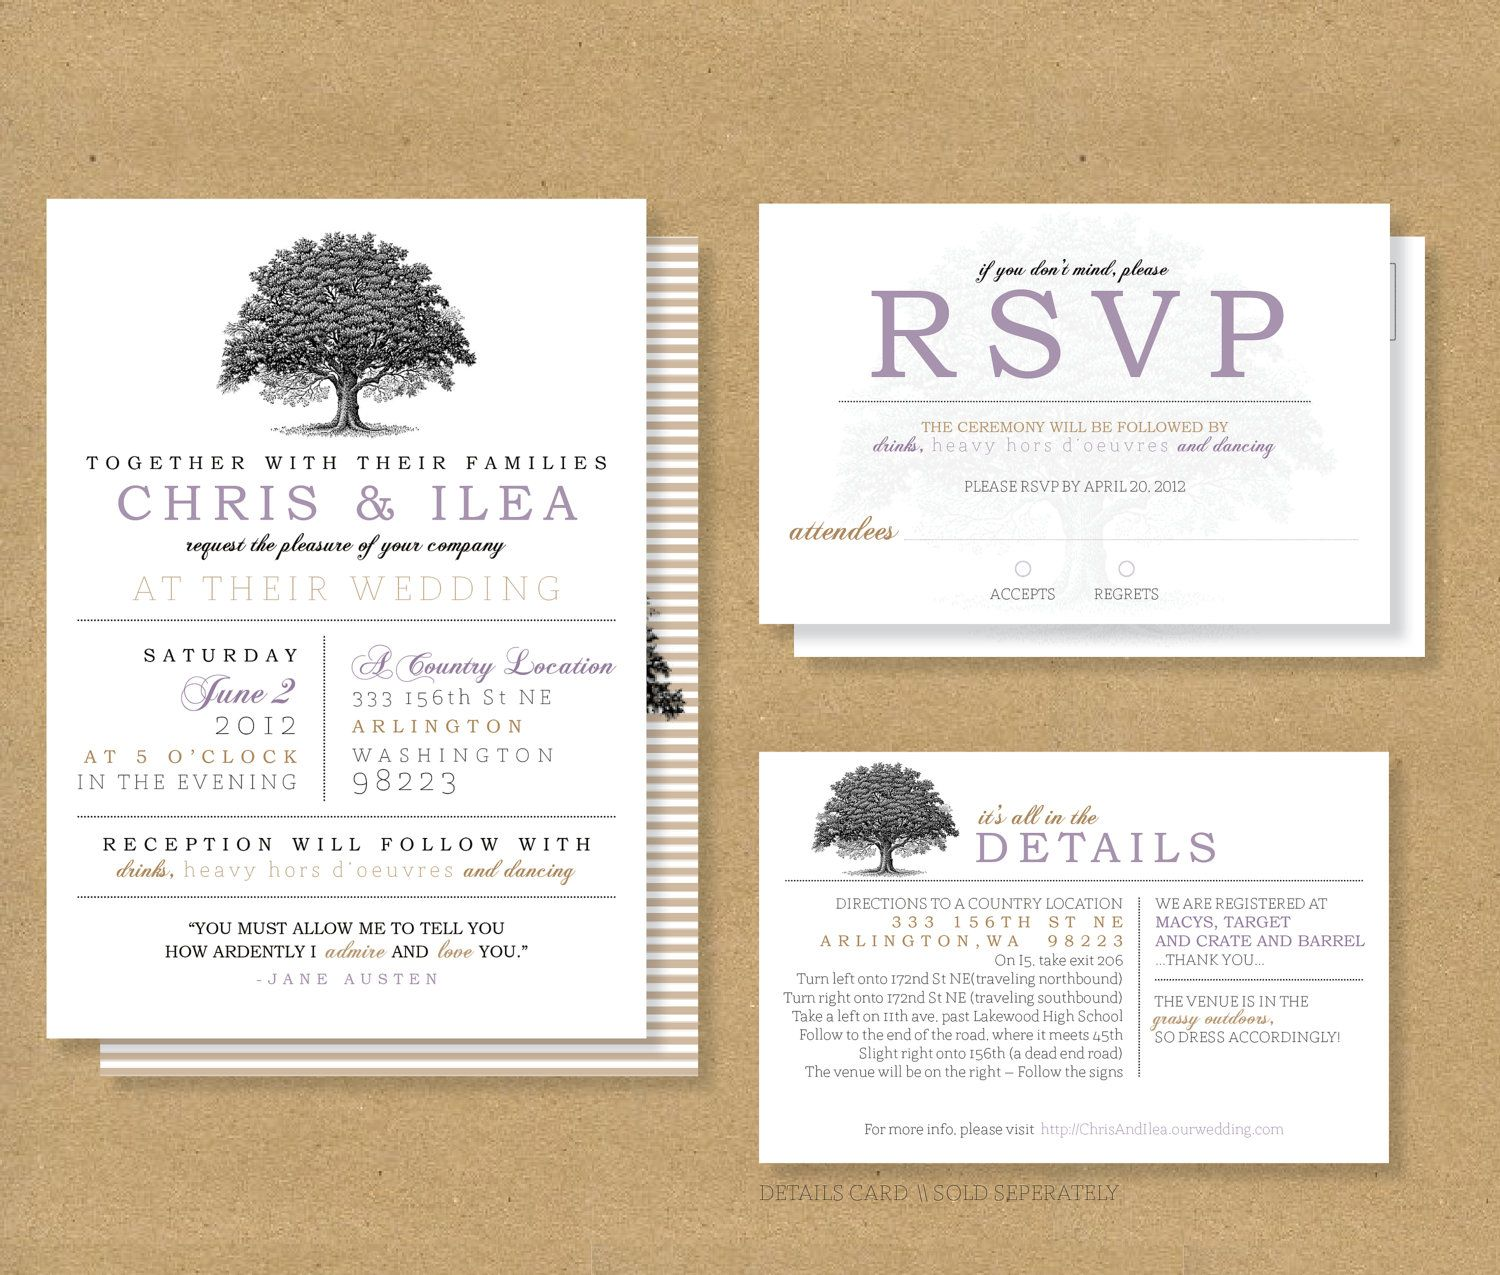 Wedding invitationwedding rsvp wording samples tips for Wording for wedding invitations with rsvp